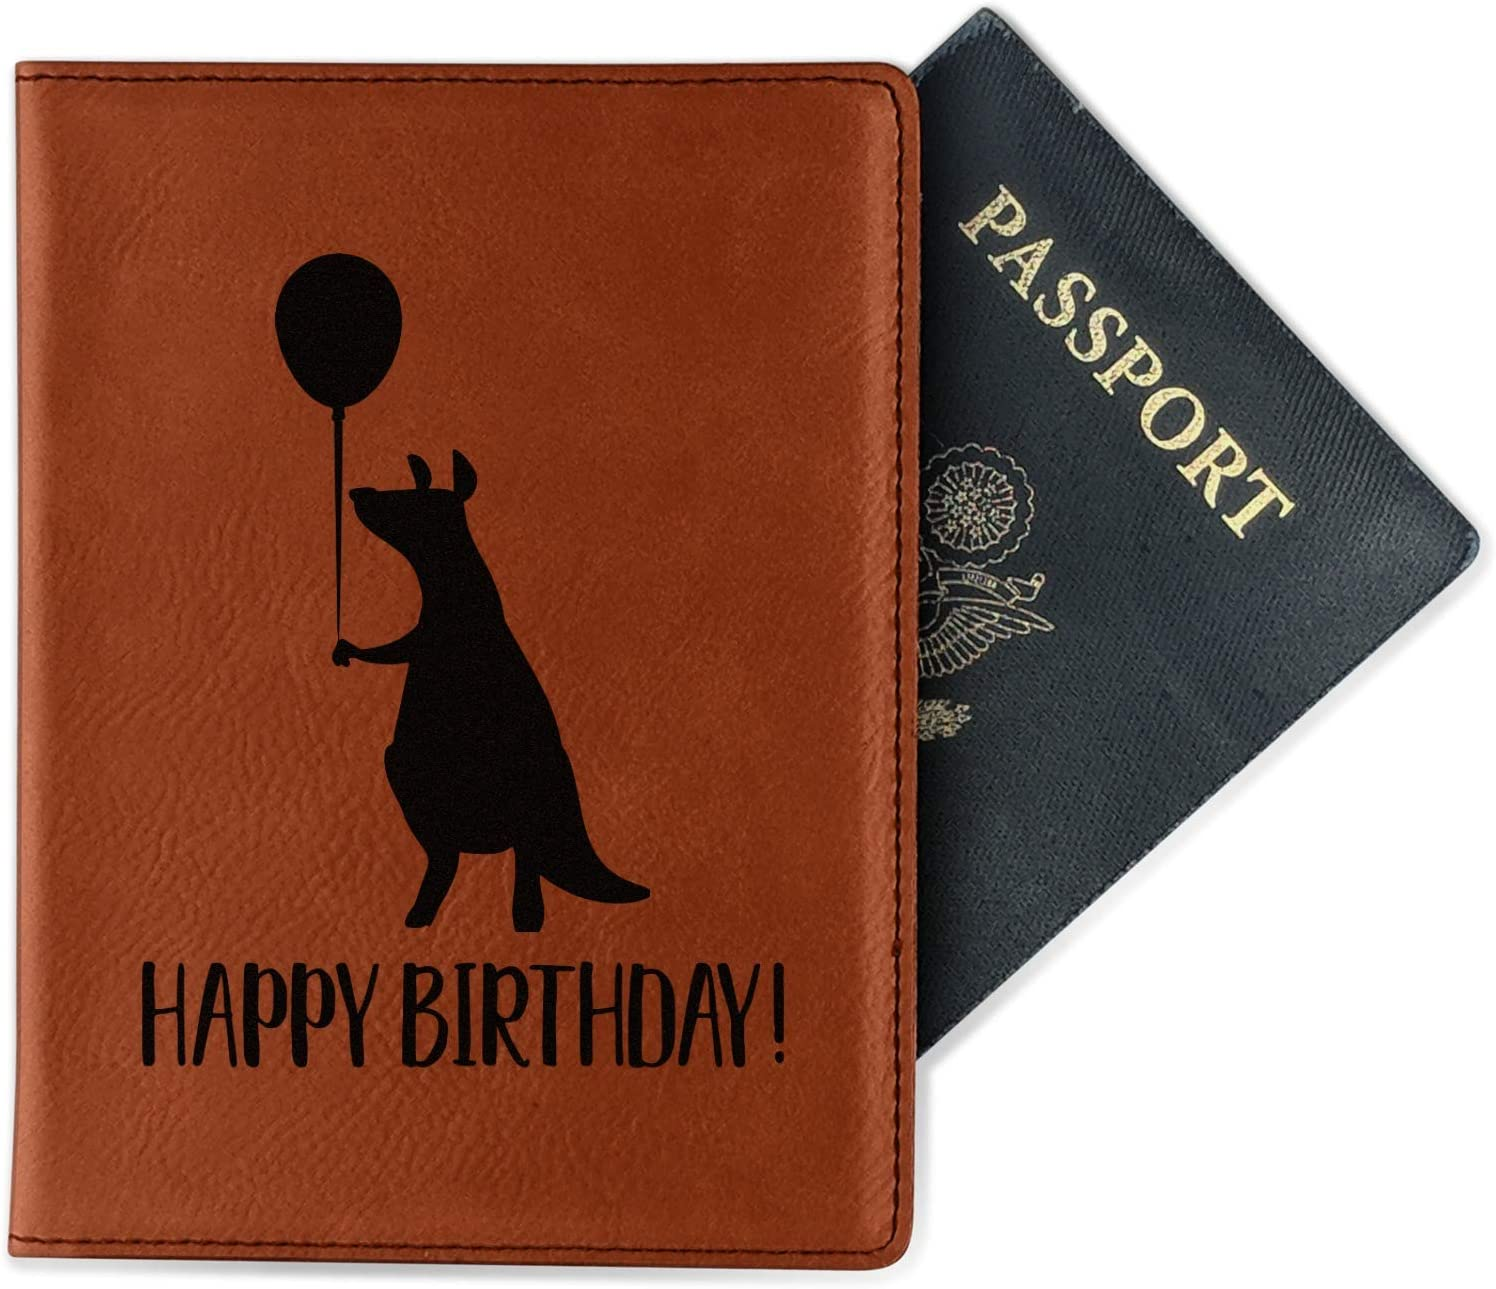 Animal Friend Birthday Leatherette Passport Holder Double Sided Personalized